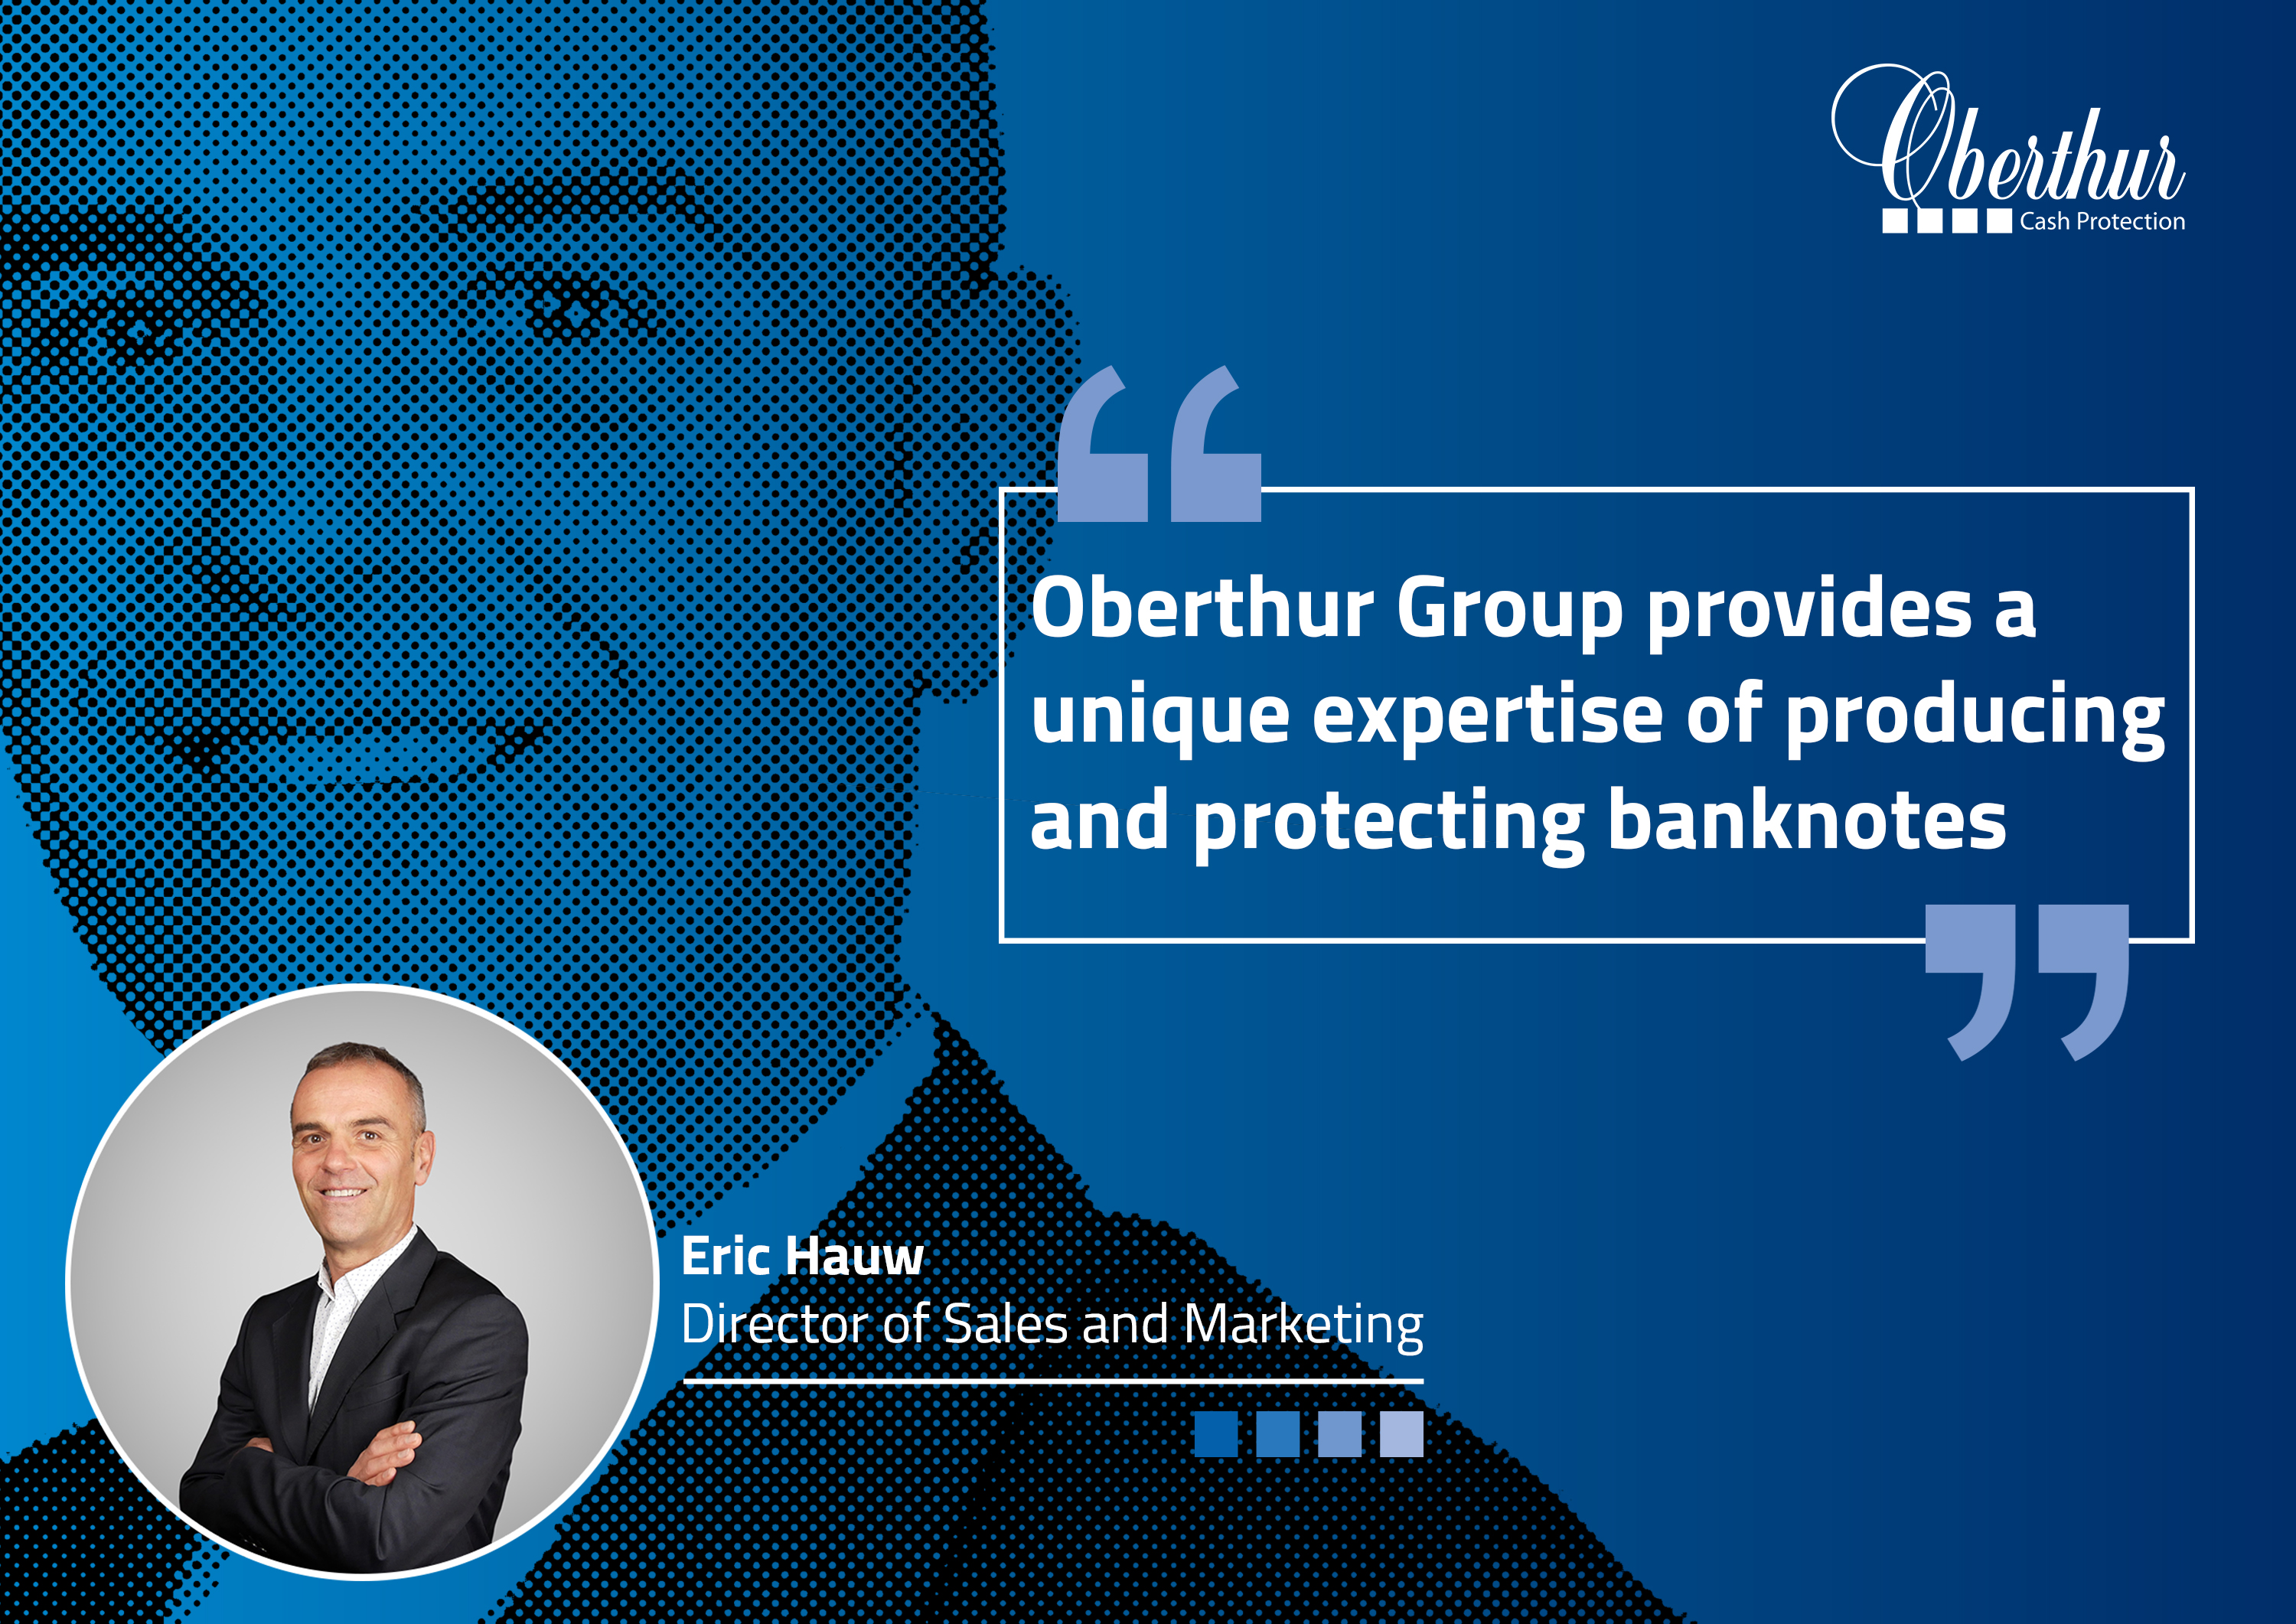 Oberthur Group : Fiduciary and Cash Protection